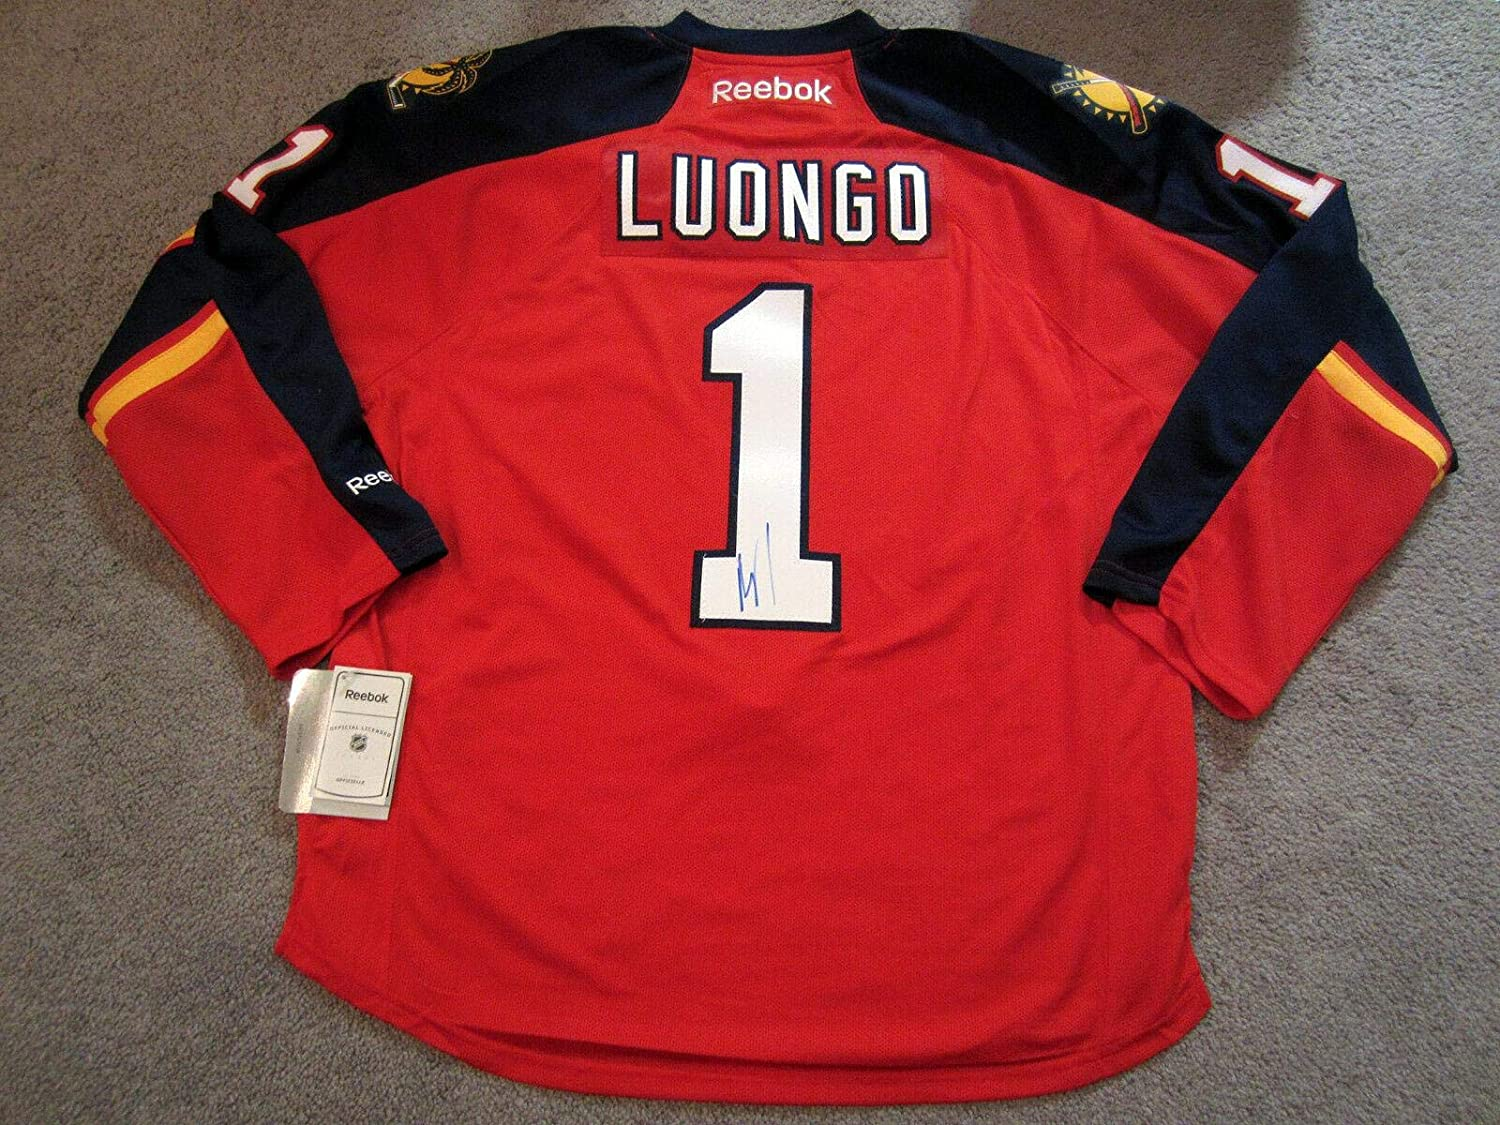 Roberto Luongo Autographed Jersey - Home w COA New Large - Beckett Authentication - Autographed NHL Jerseys